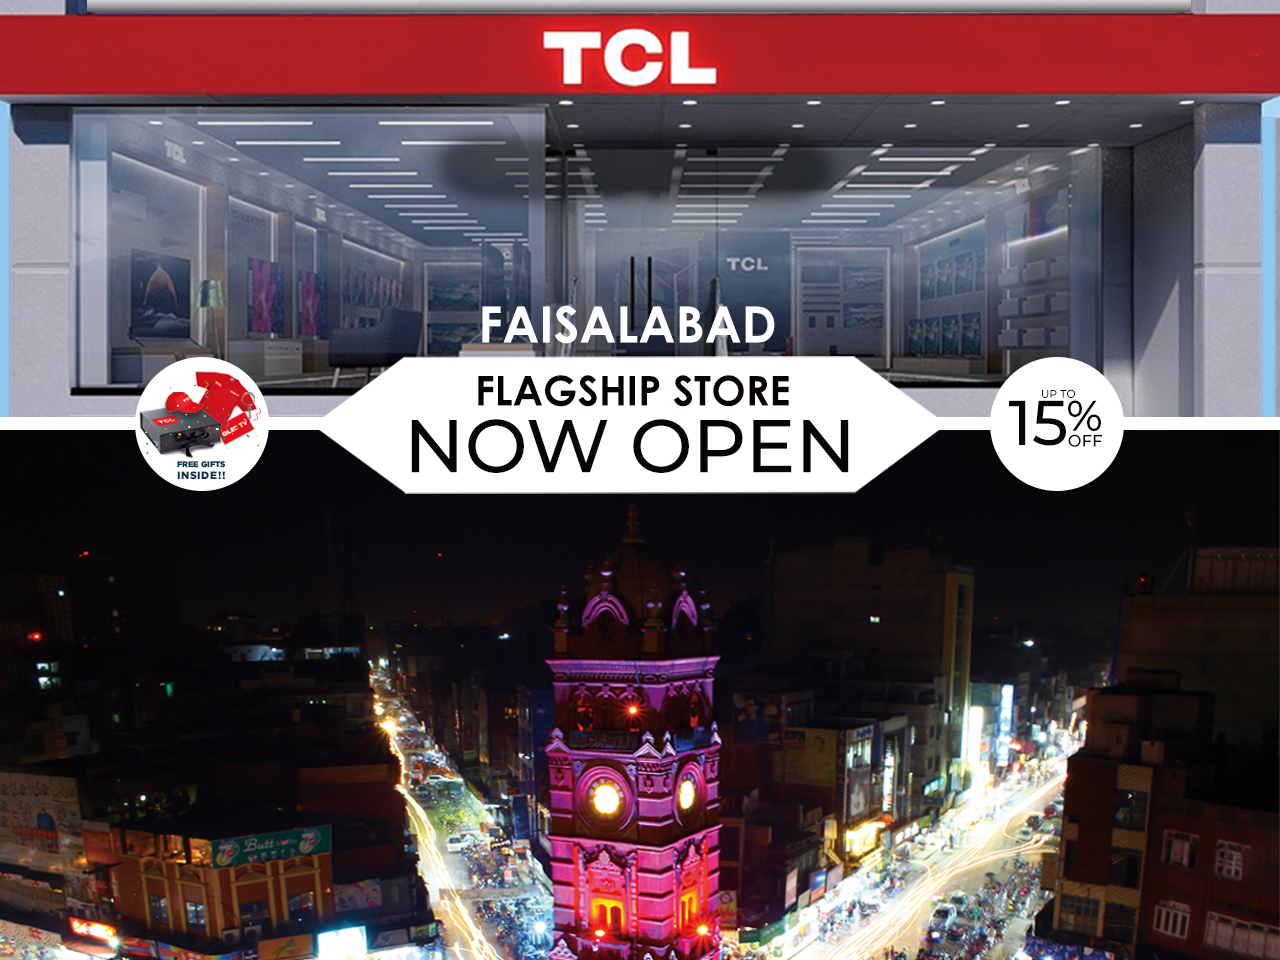 TCL opens its First Flagship Store in Faisalabad